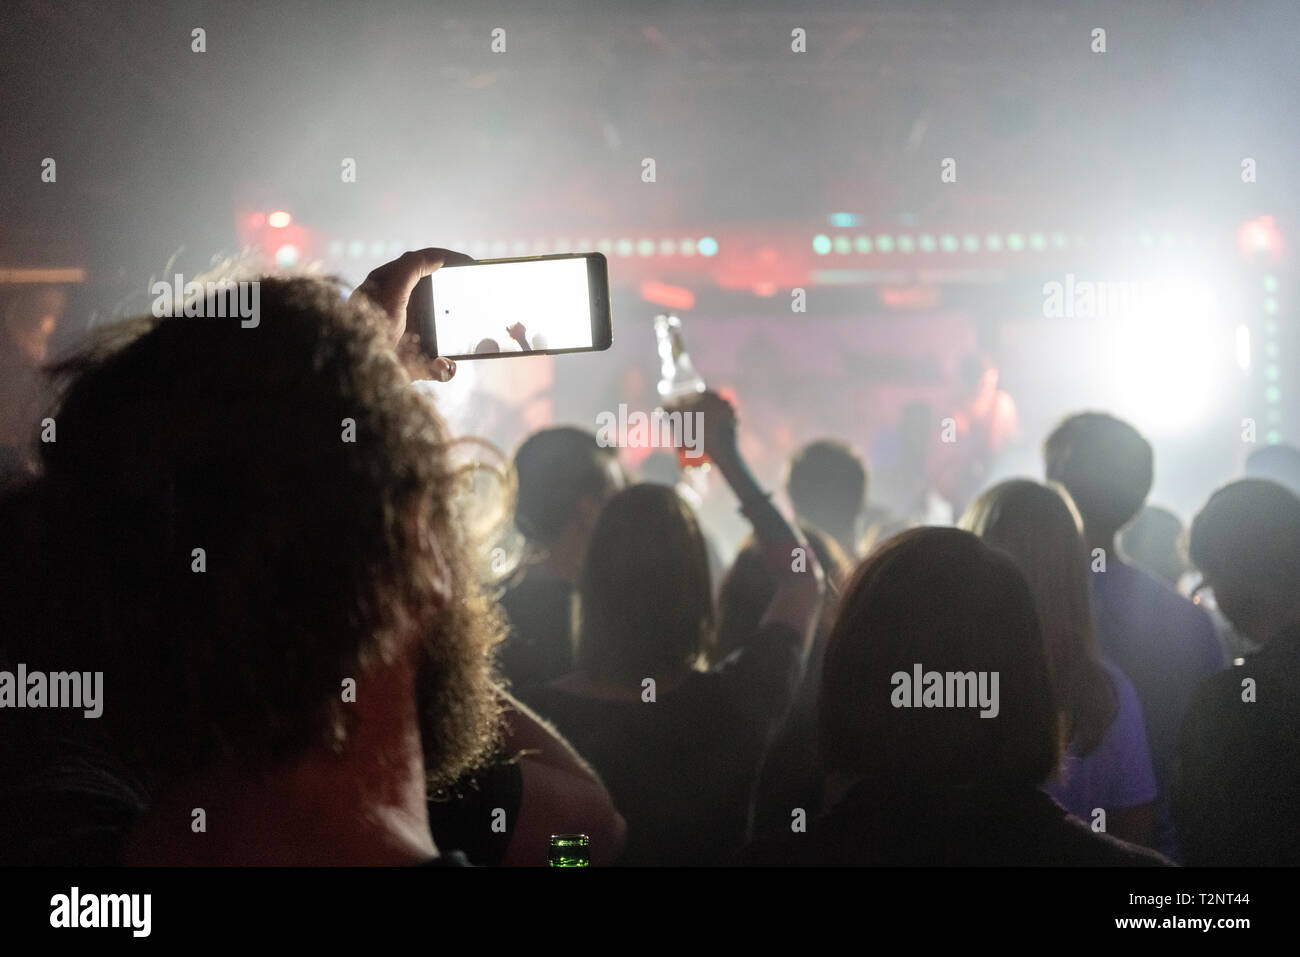 Man taking photograph of concert with smartphone - Stock Image